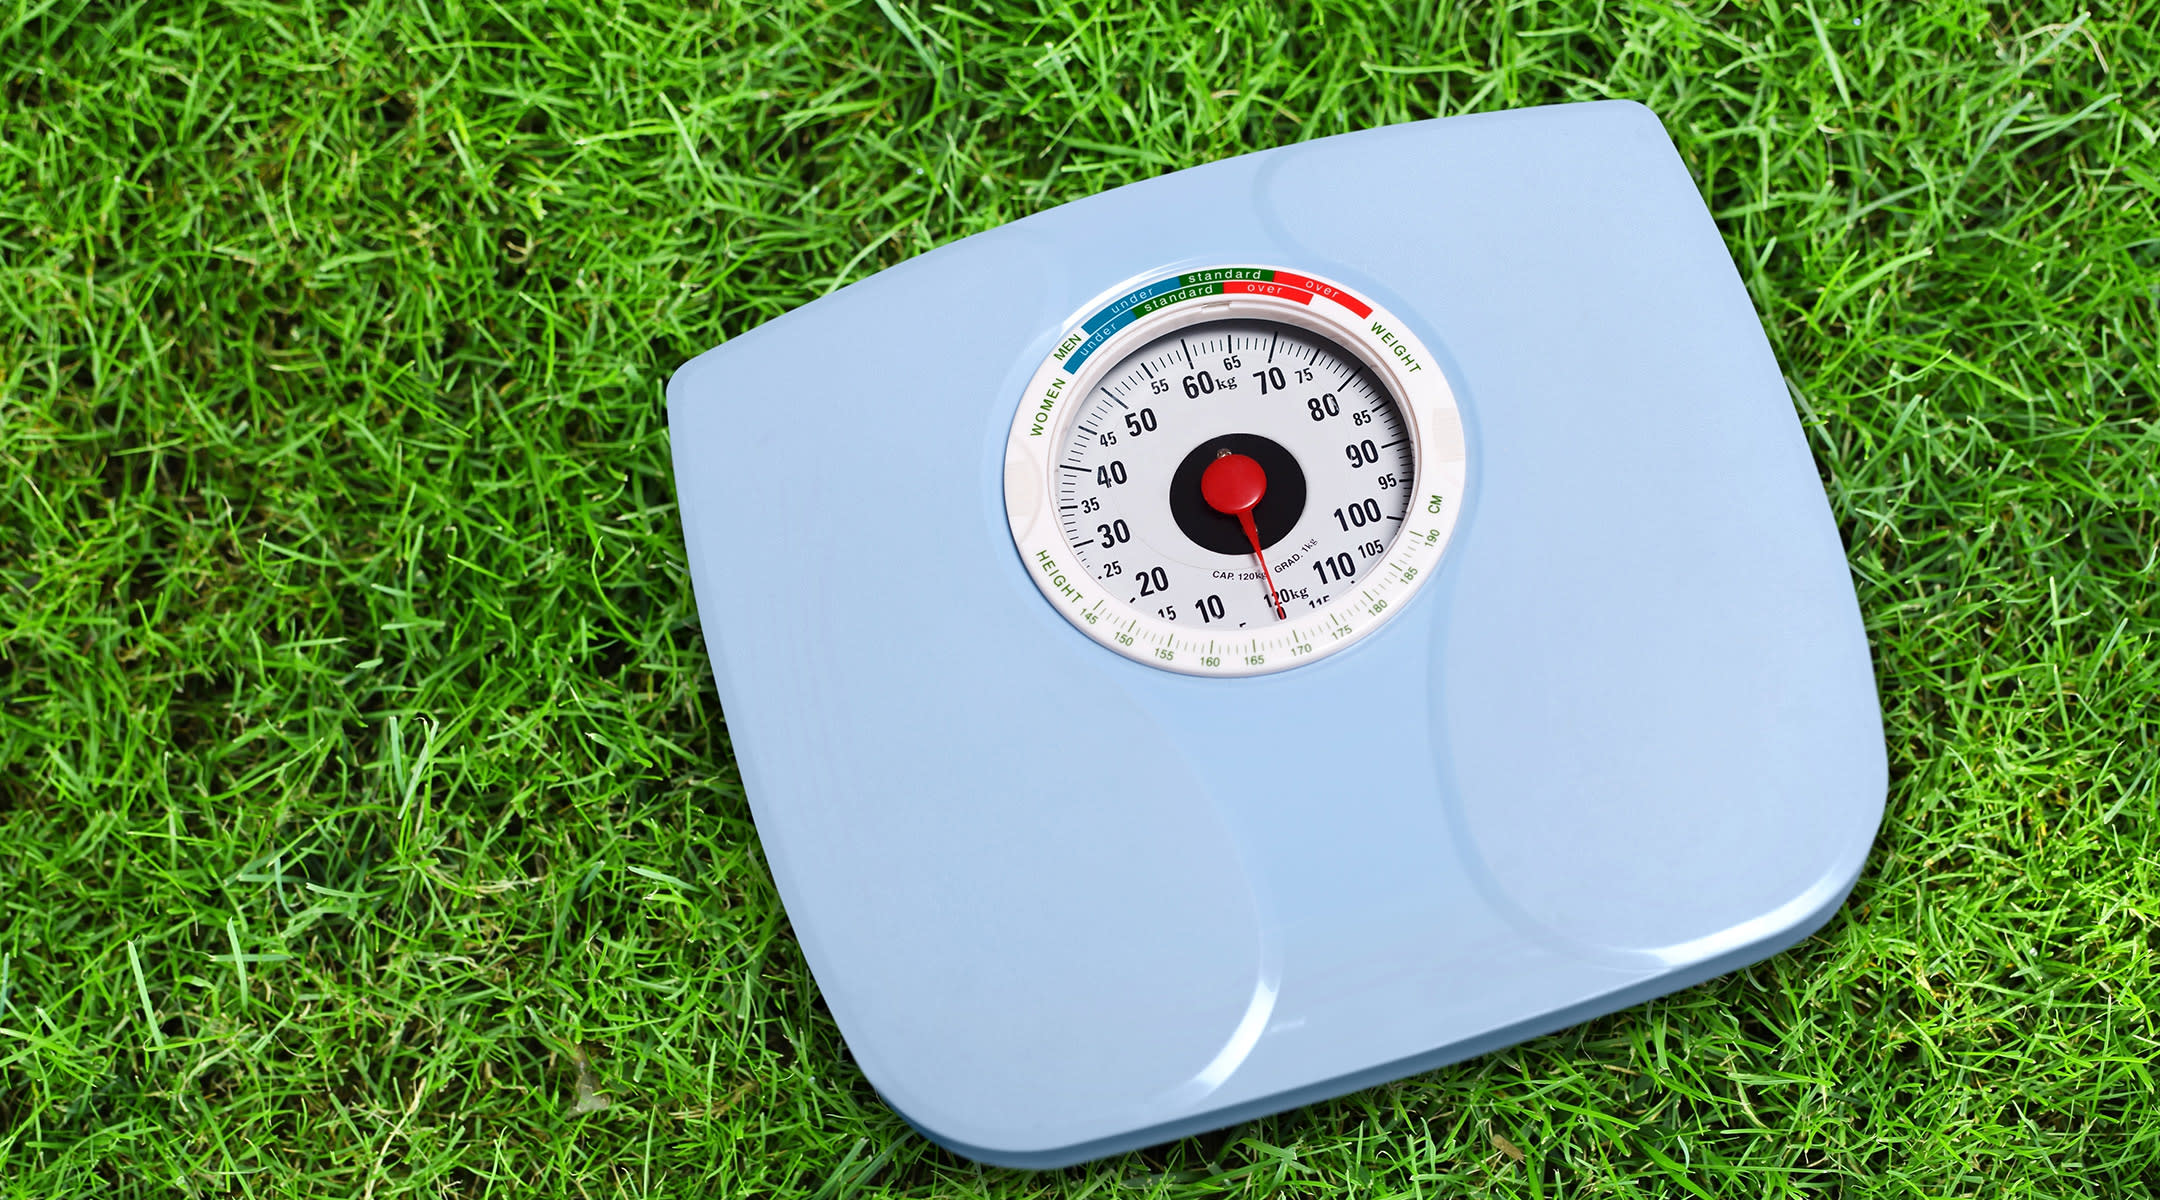 analog weight scale laying in grass